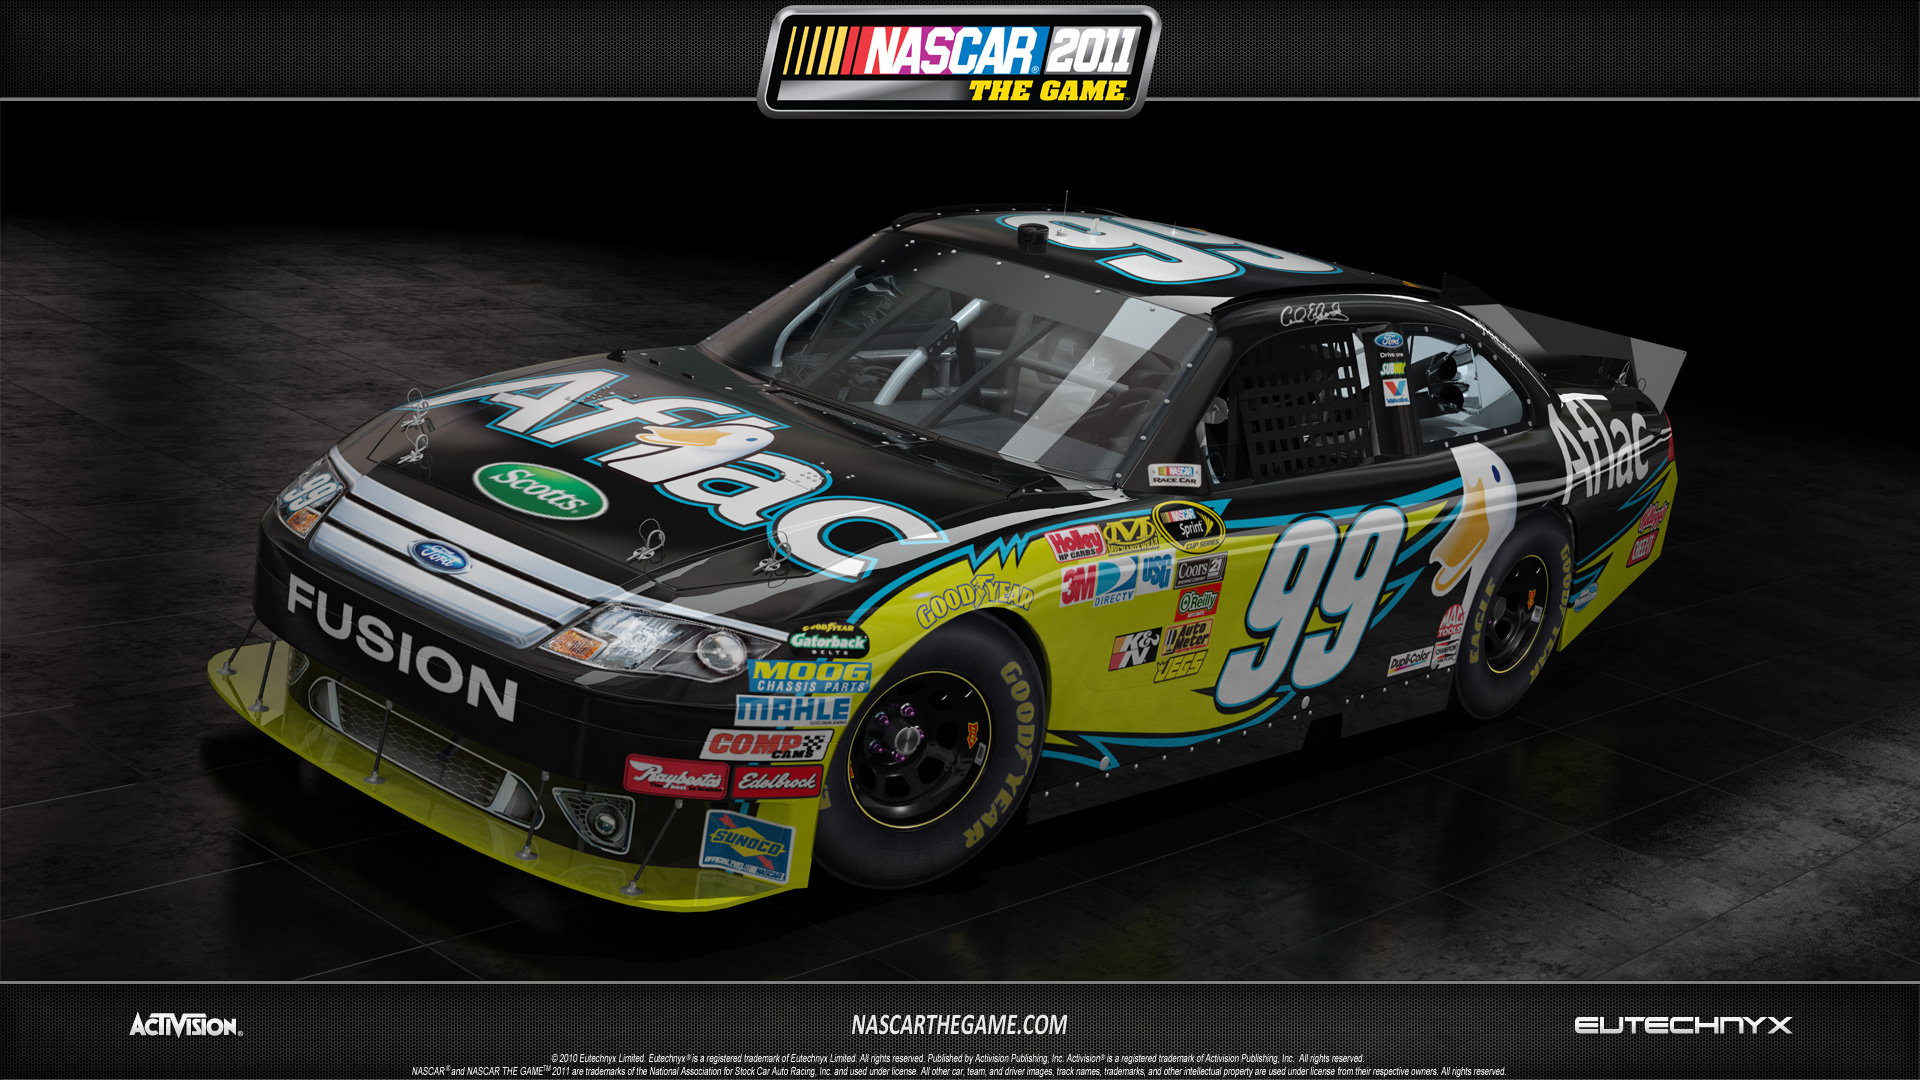 NASCAR The Game 2011 - Carl Edwards | OnlineRaceDriver